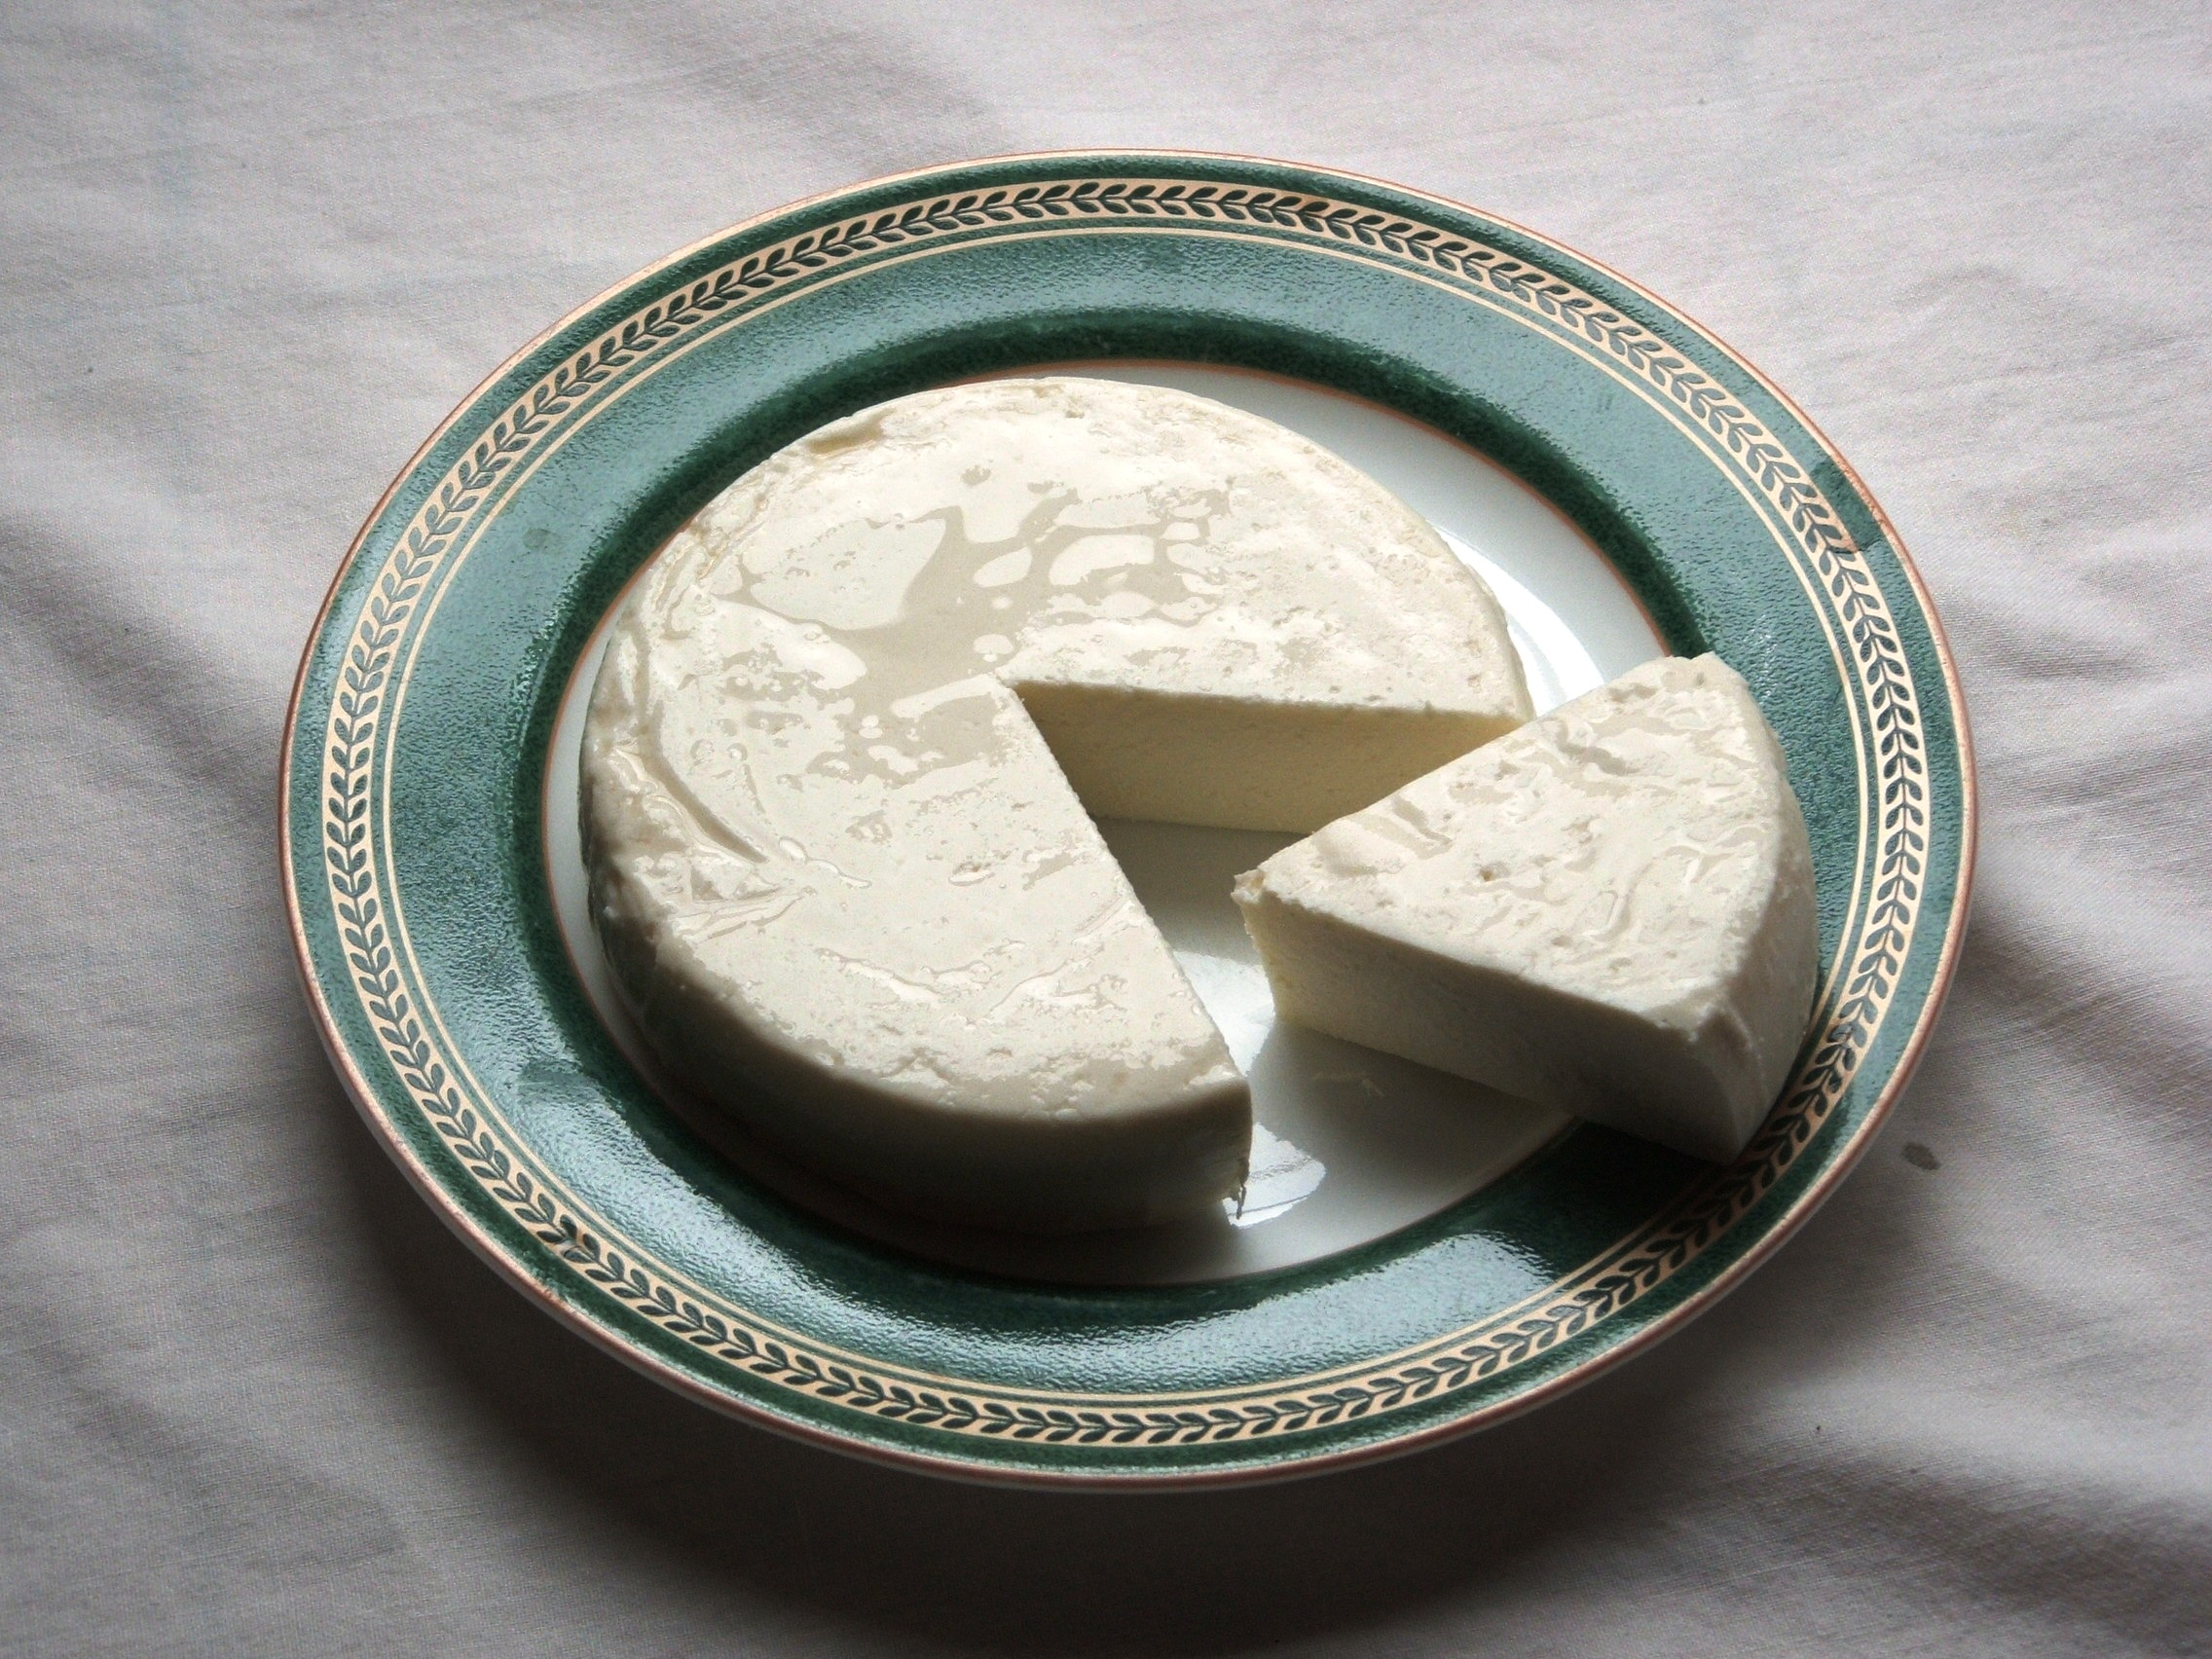 Queso fresco on a plate, one slice removed